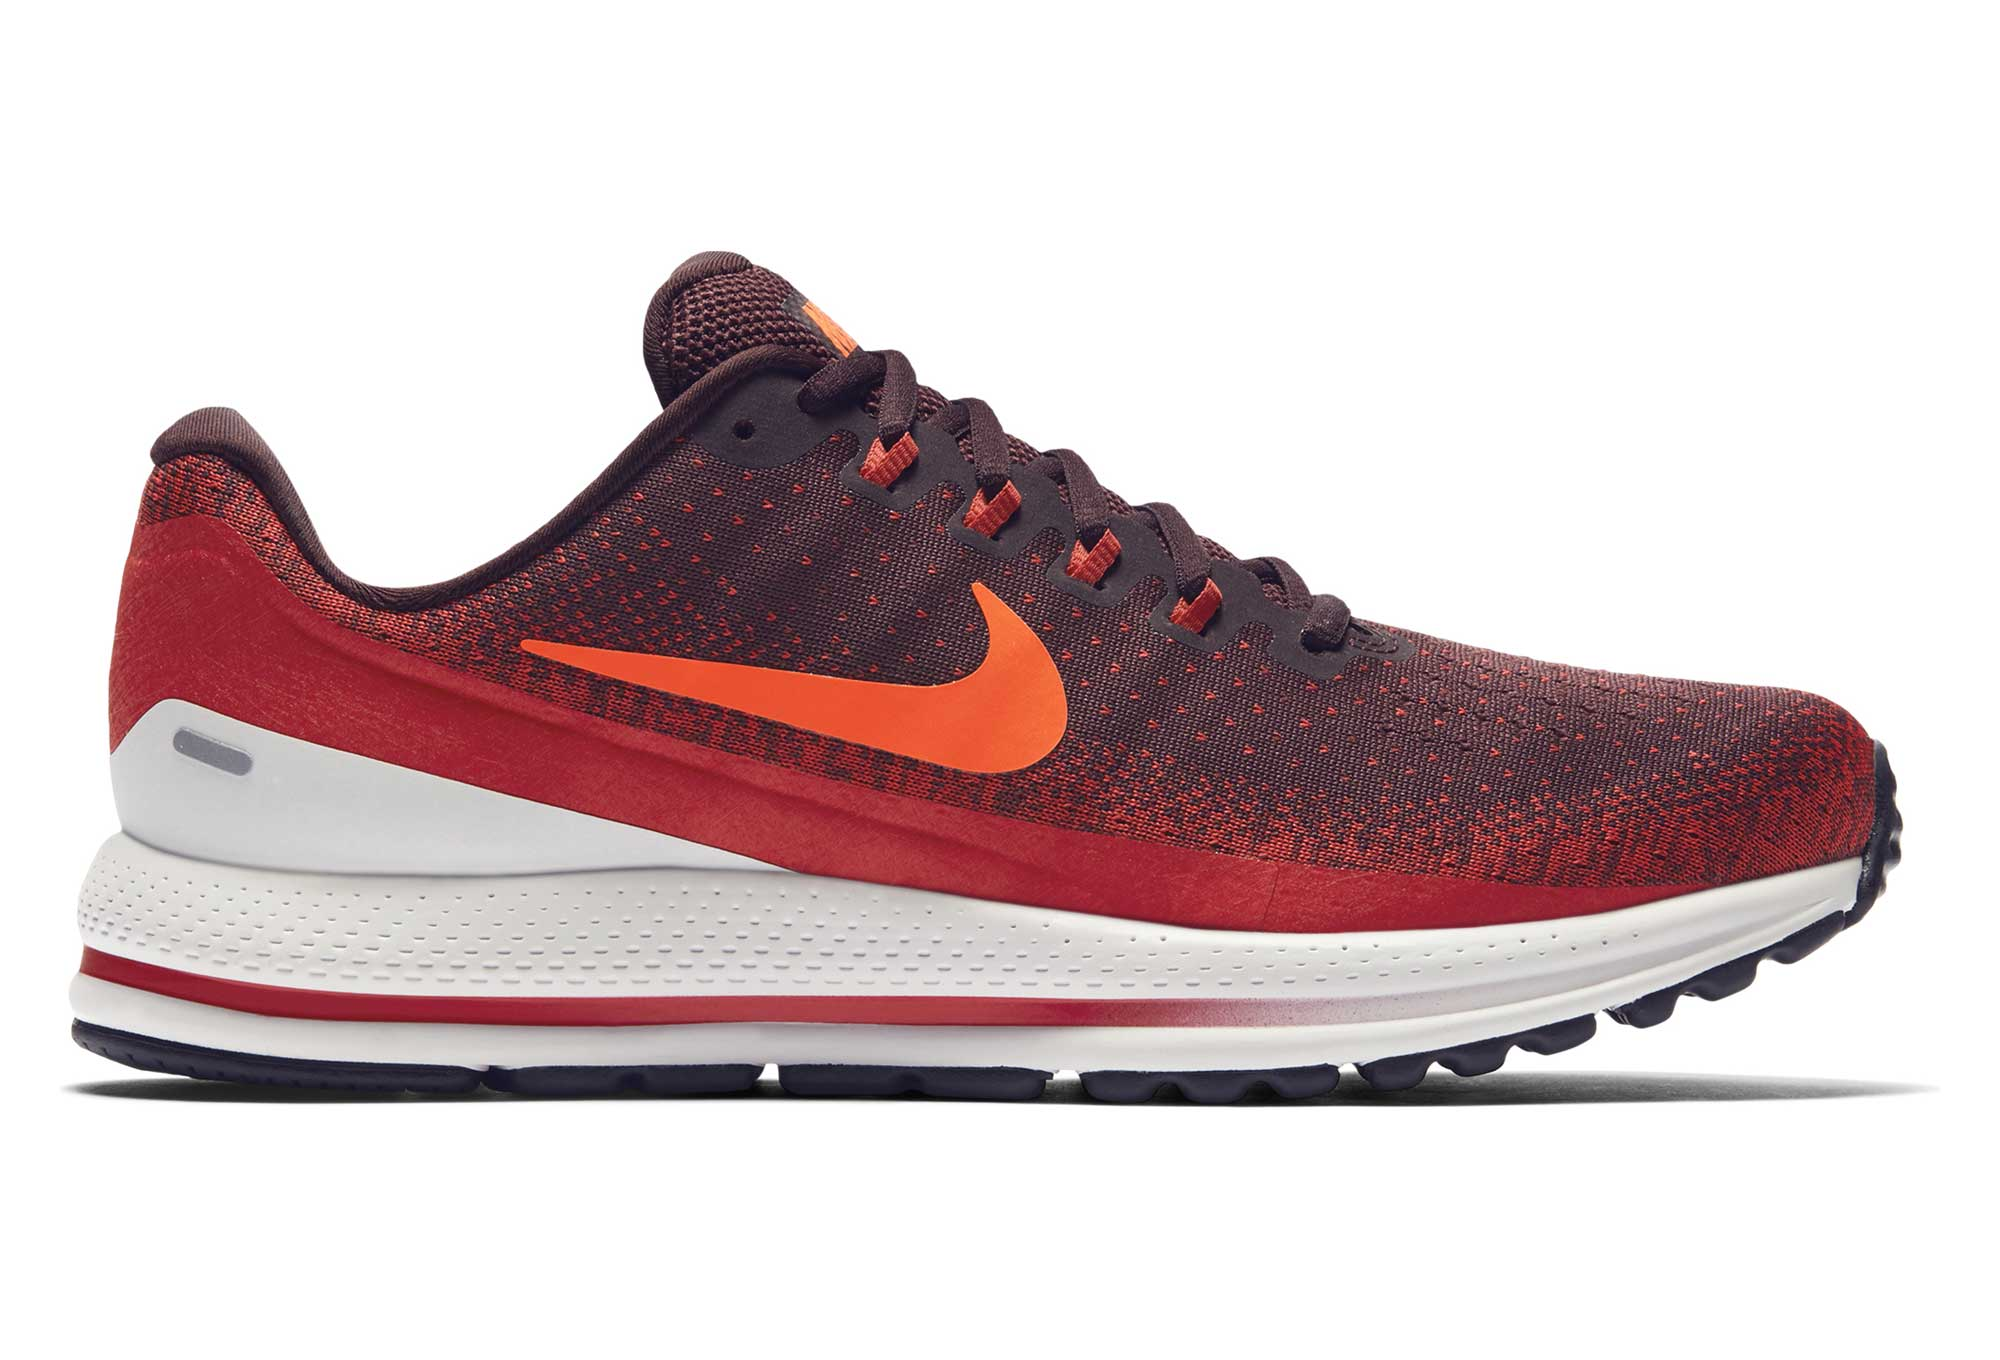 7 Best Nike Running Shoes for Flat Feet